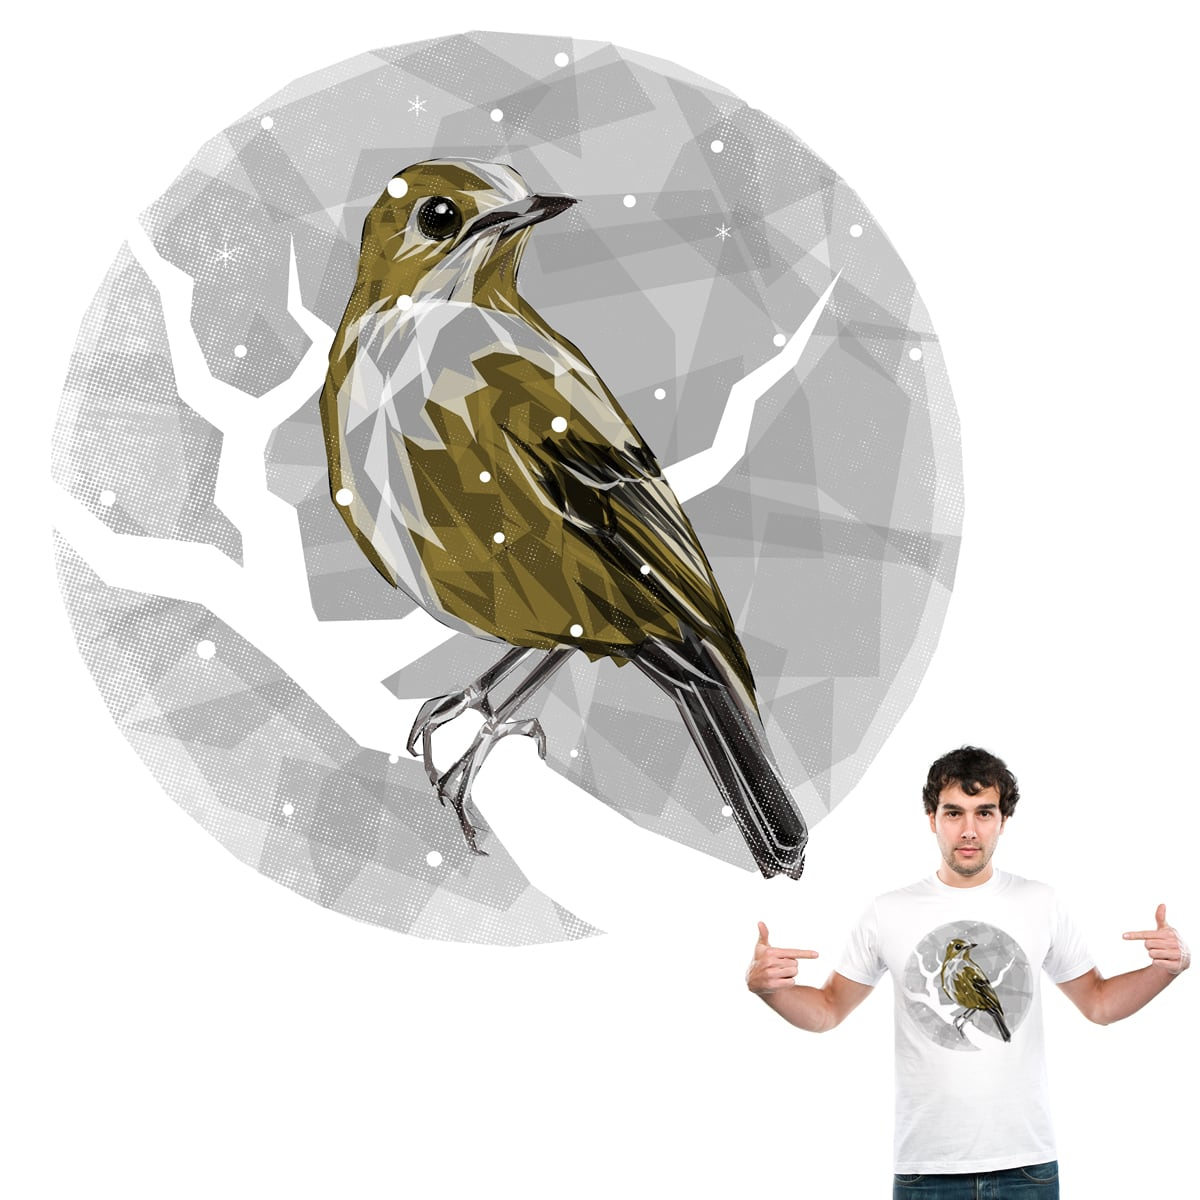 Perched by Joe Conde on Threadless